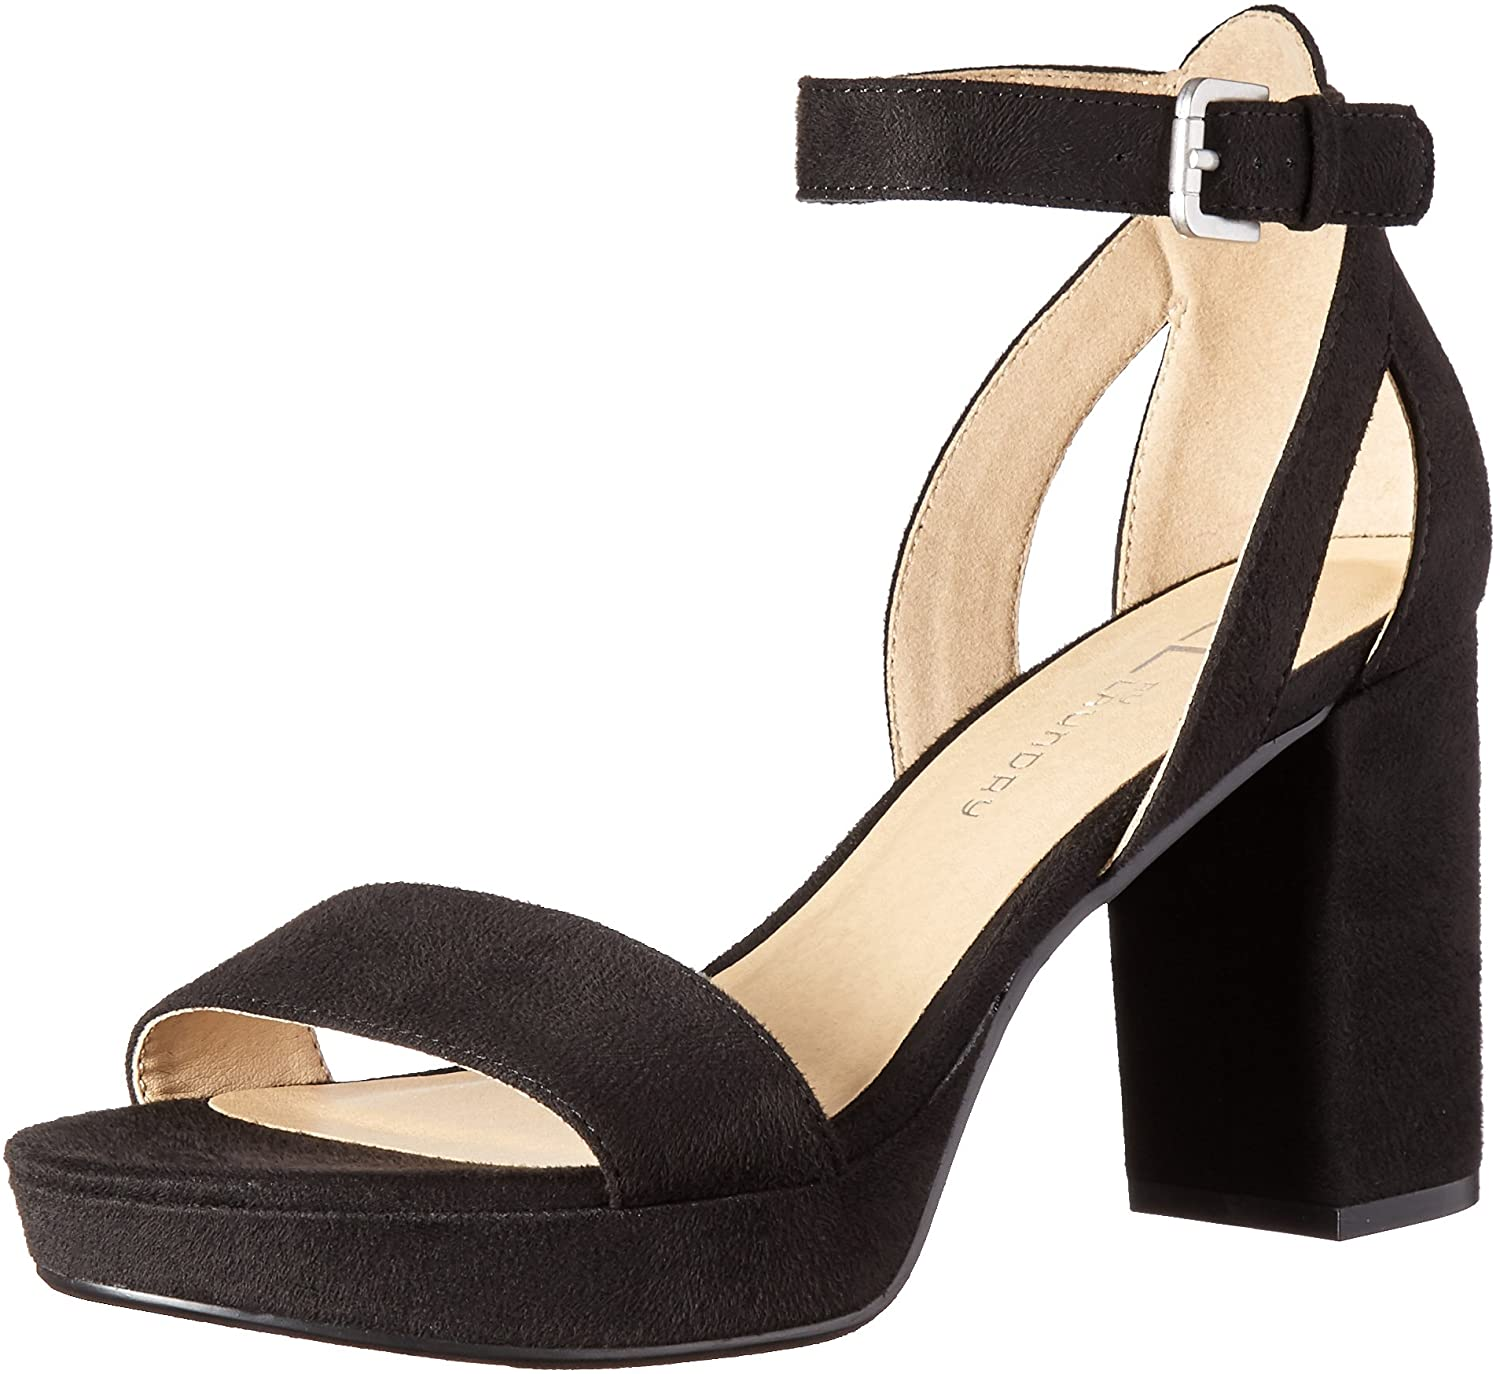 CL by Chinese Laundry Women's Go On Platform Dress Sandal